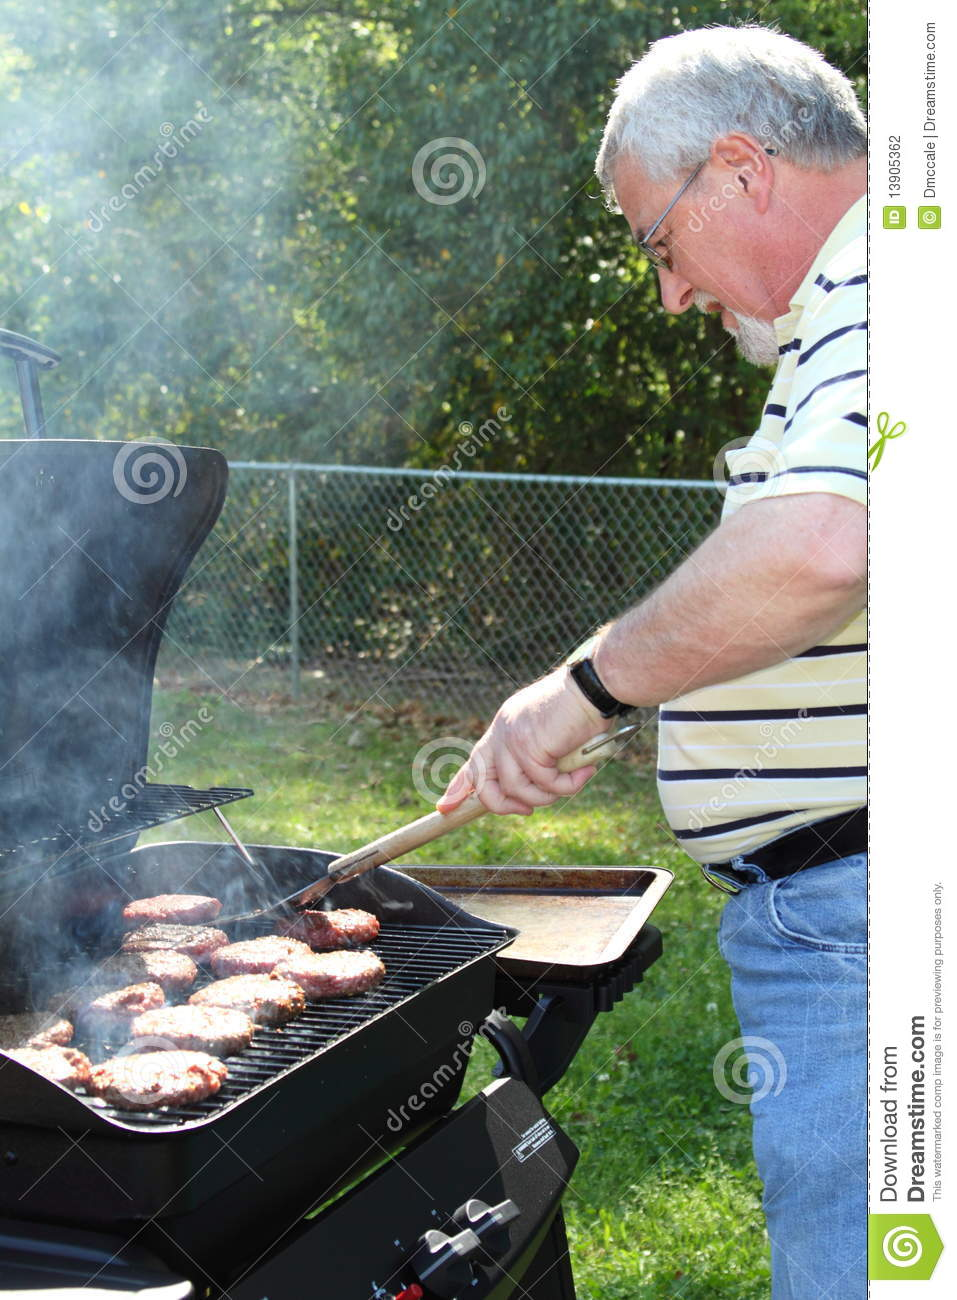 Cook out burgers